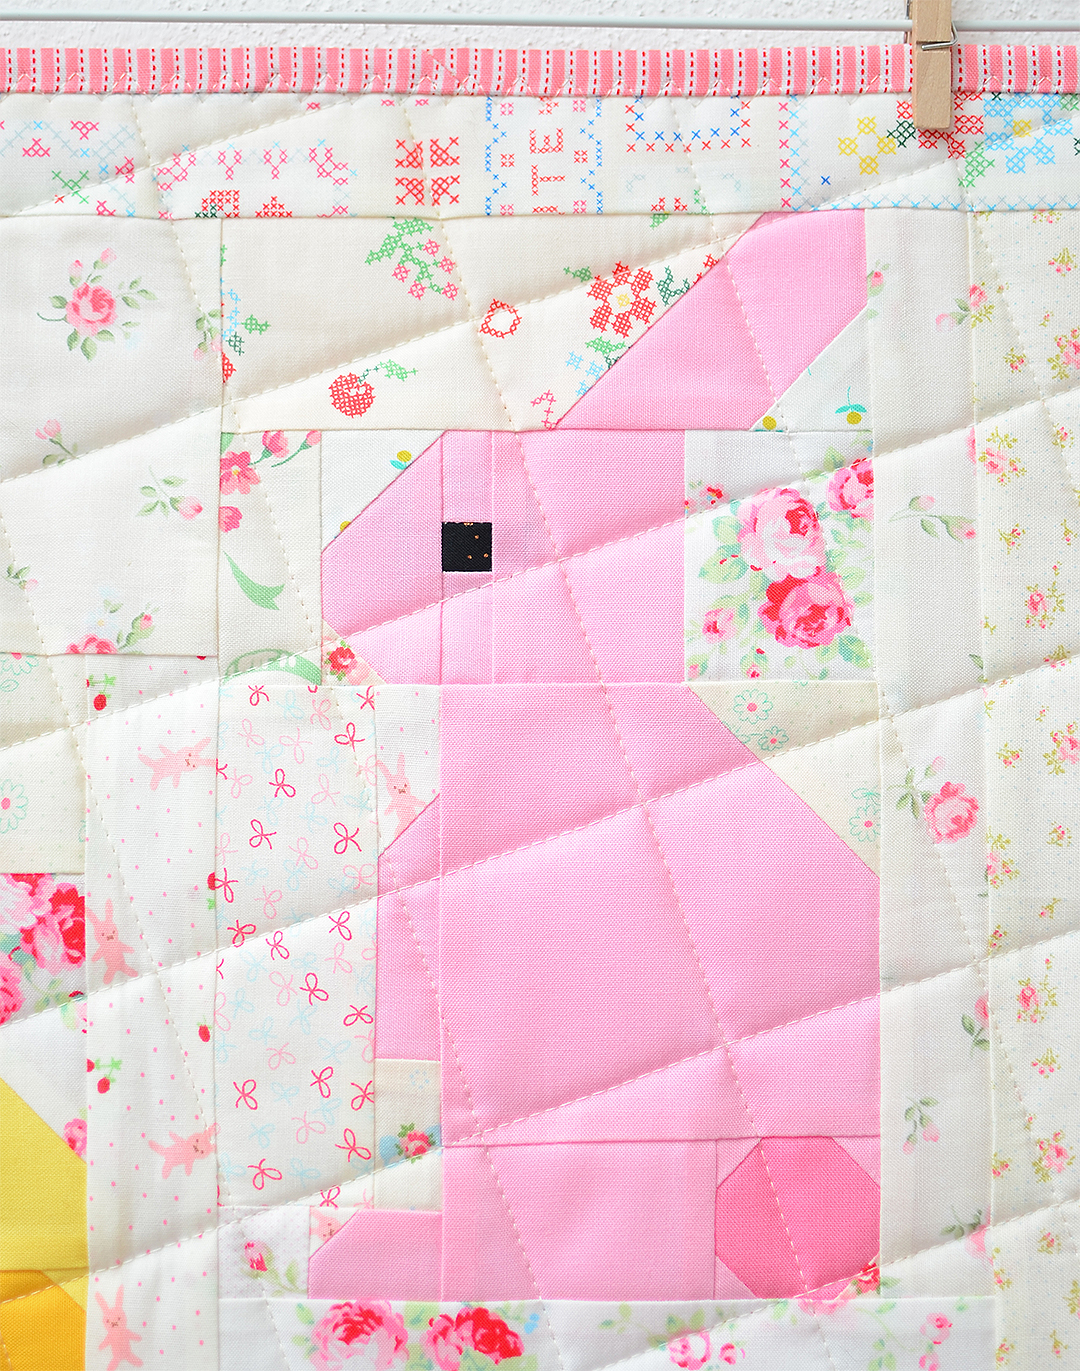 Bunny Easter quilt pattern - pink bunny